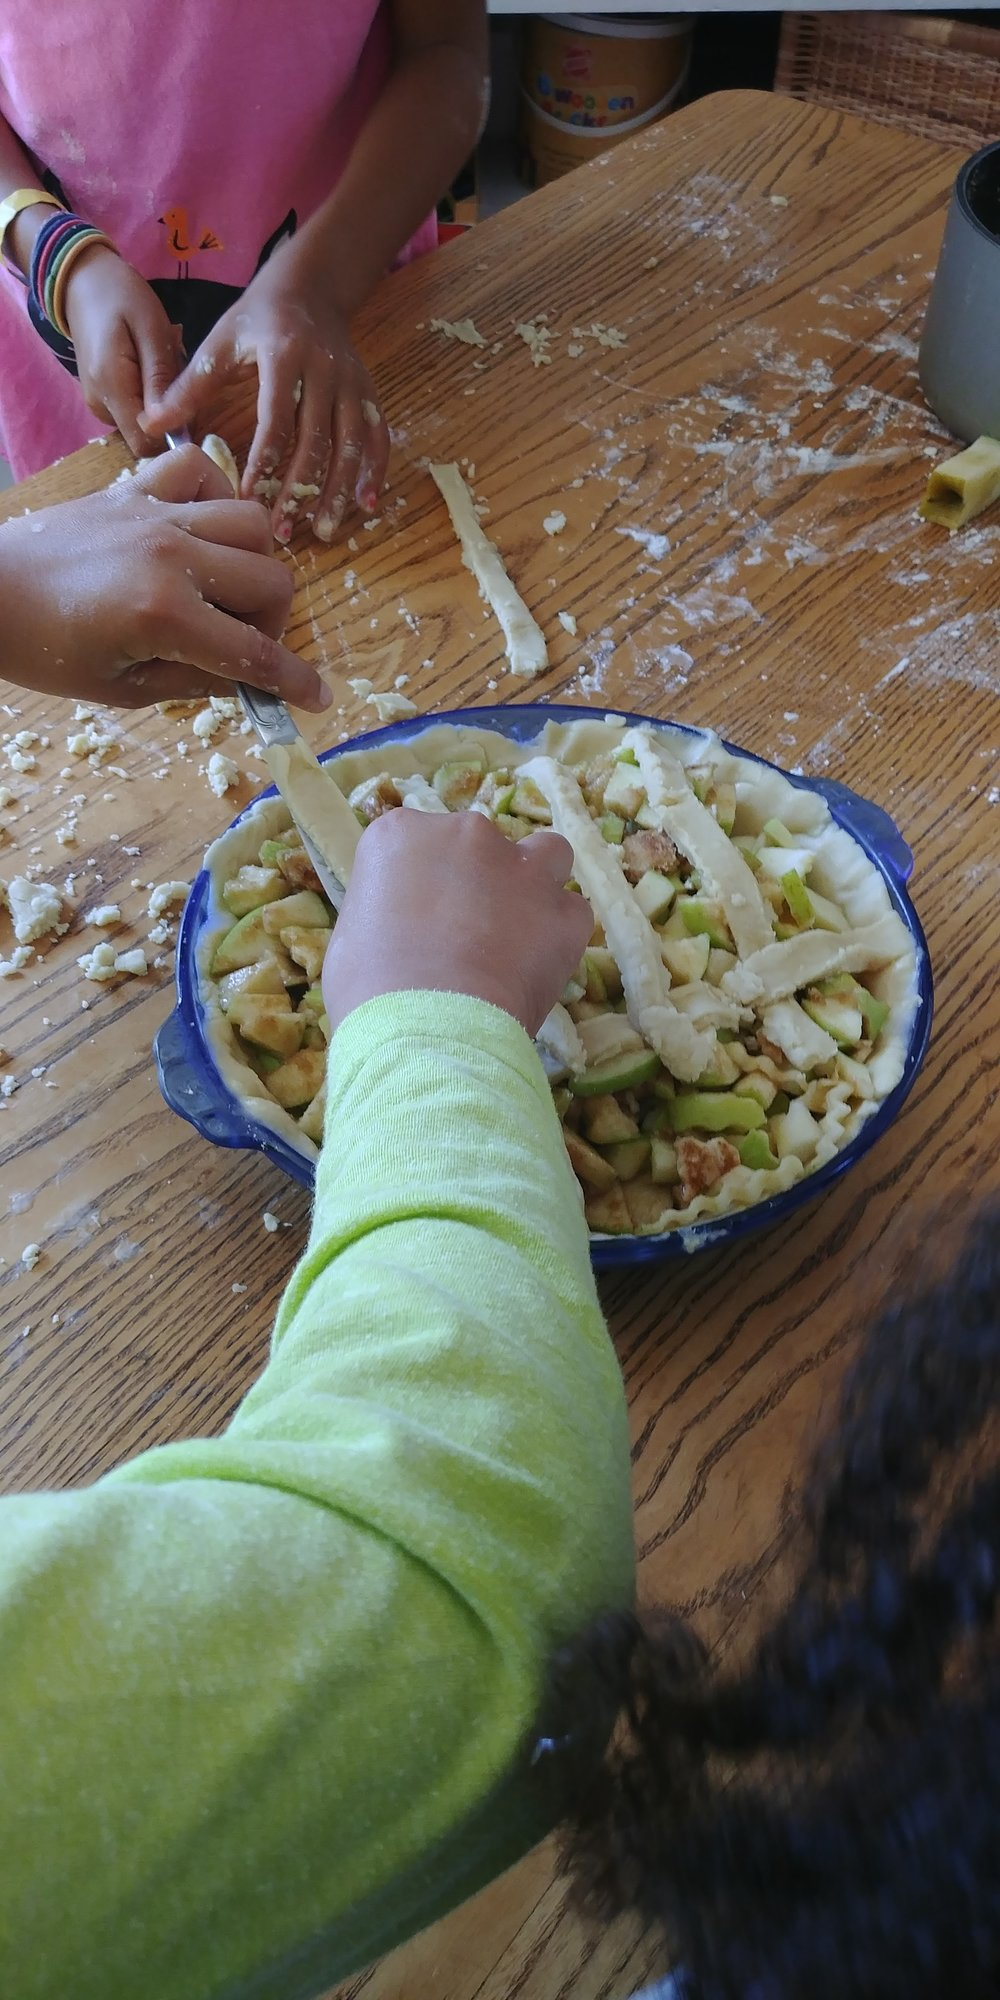 Young hands work together to build community - and pie!